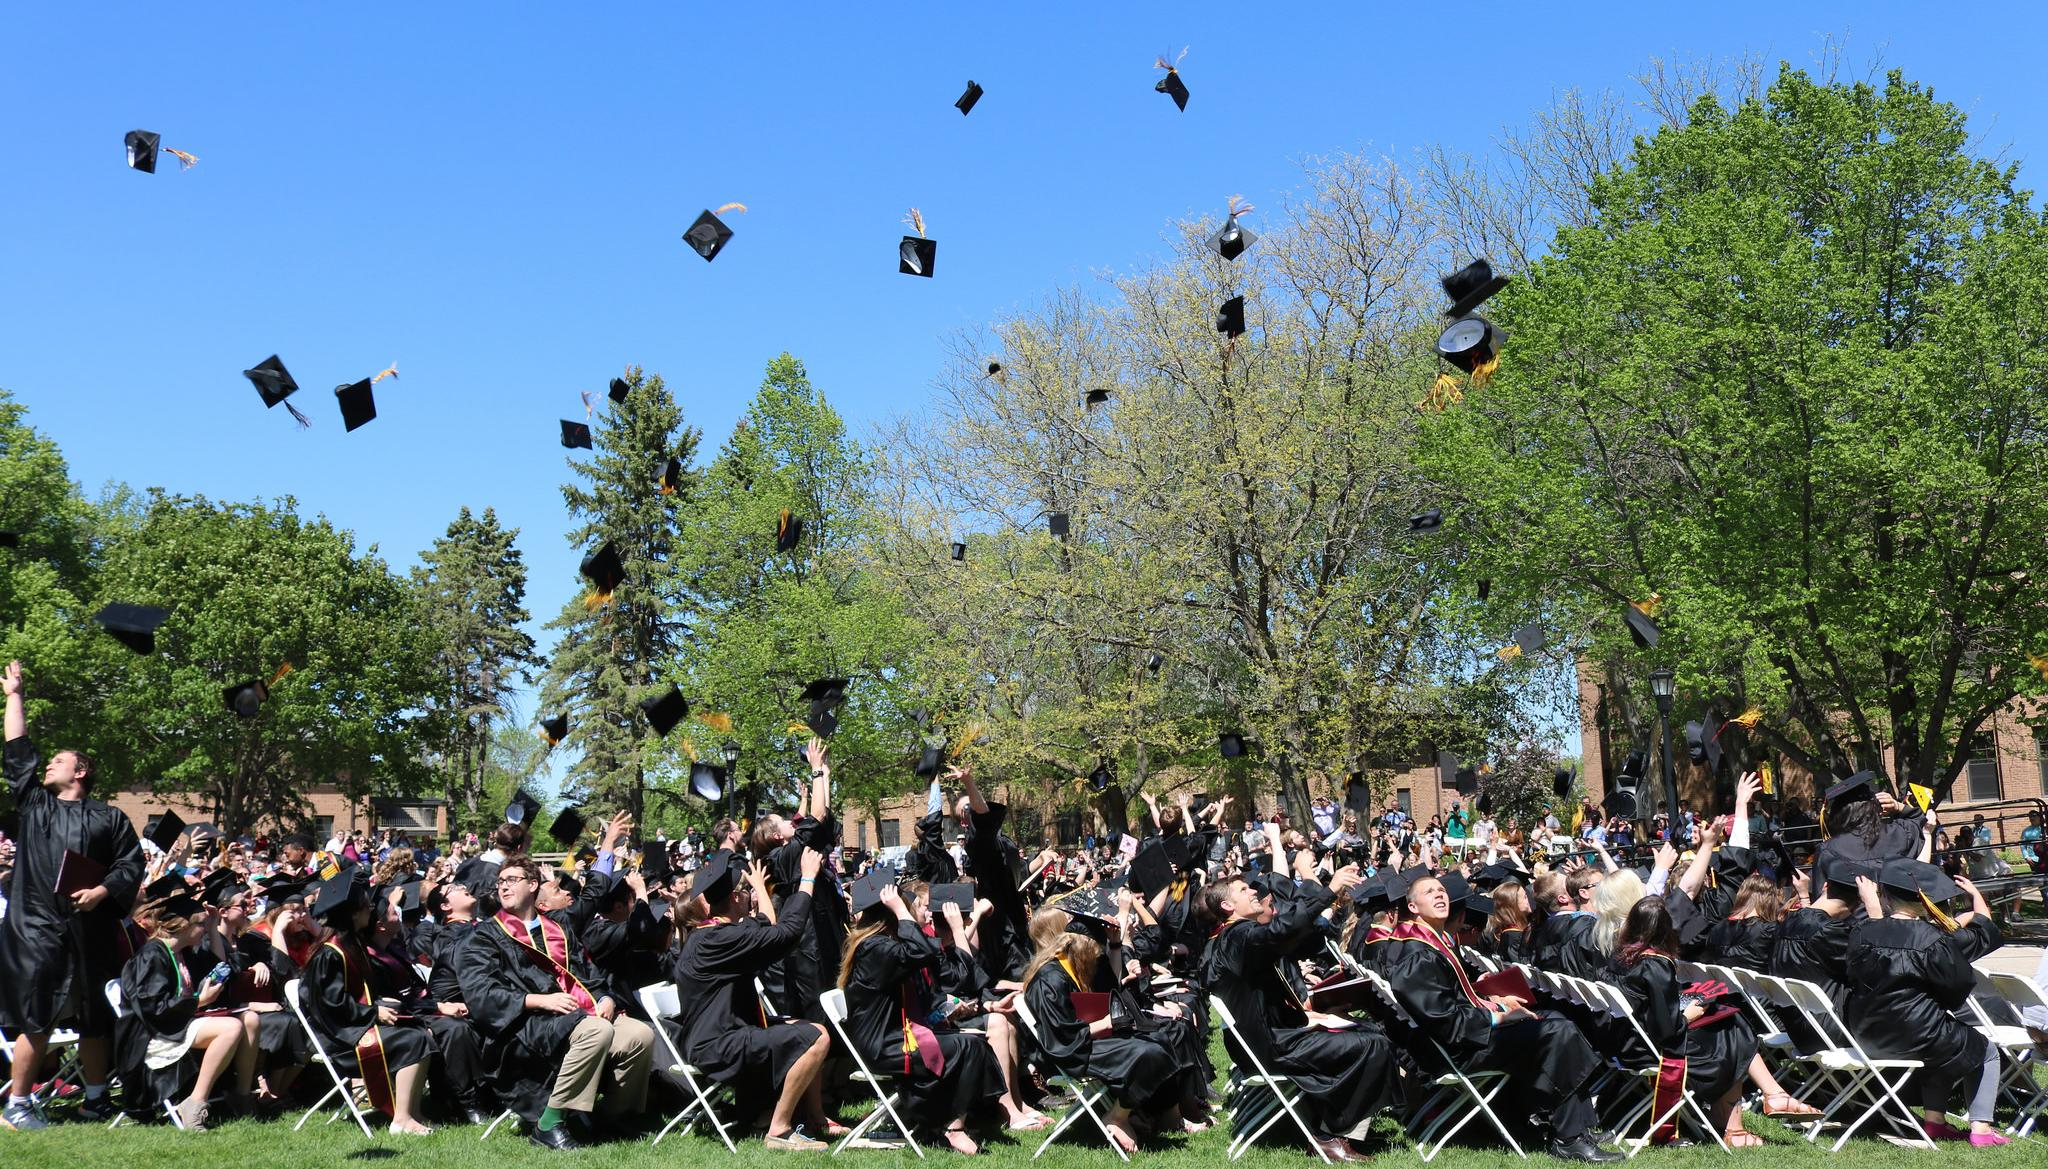 Morris graduates throwing caps in the air at Commencement